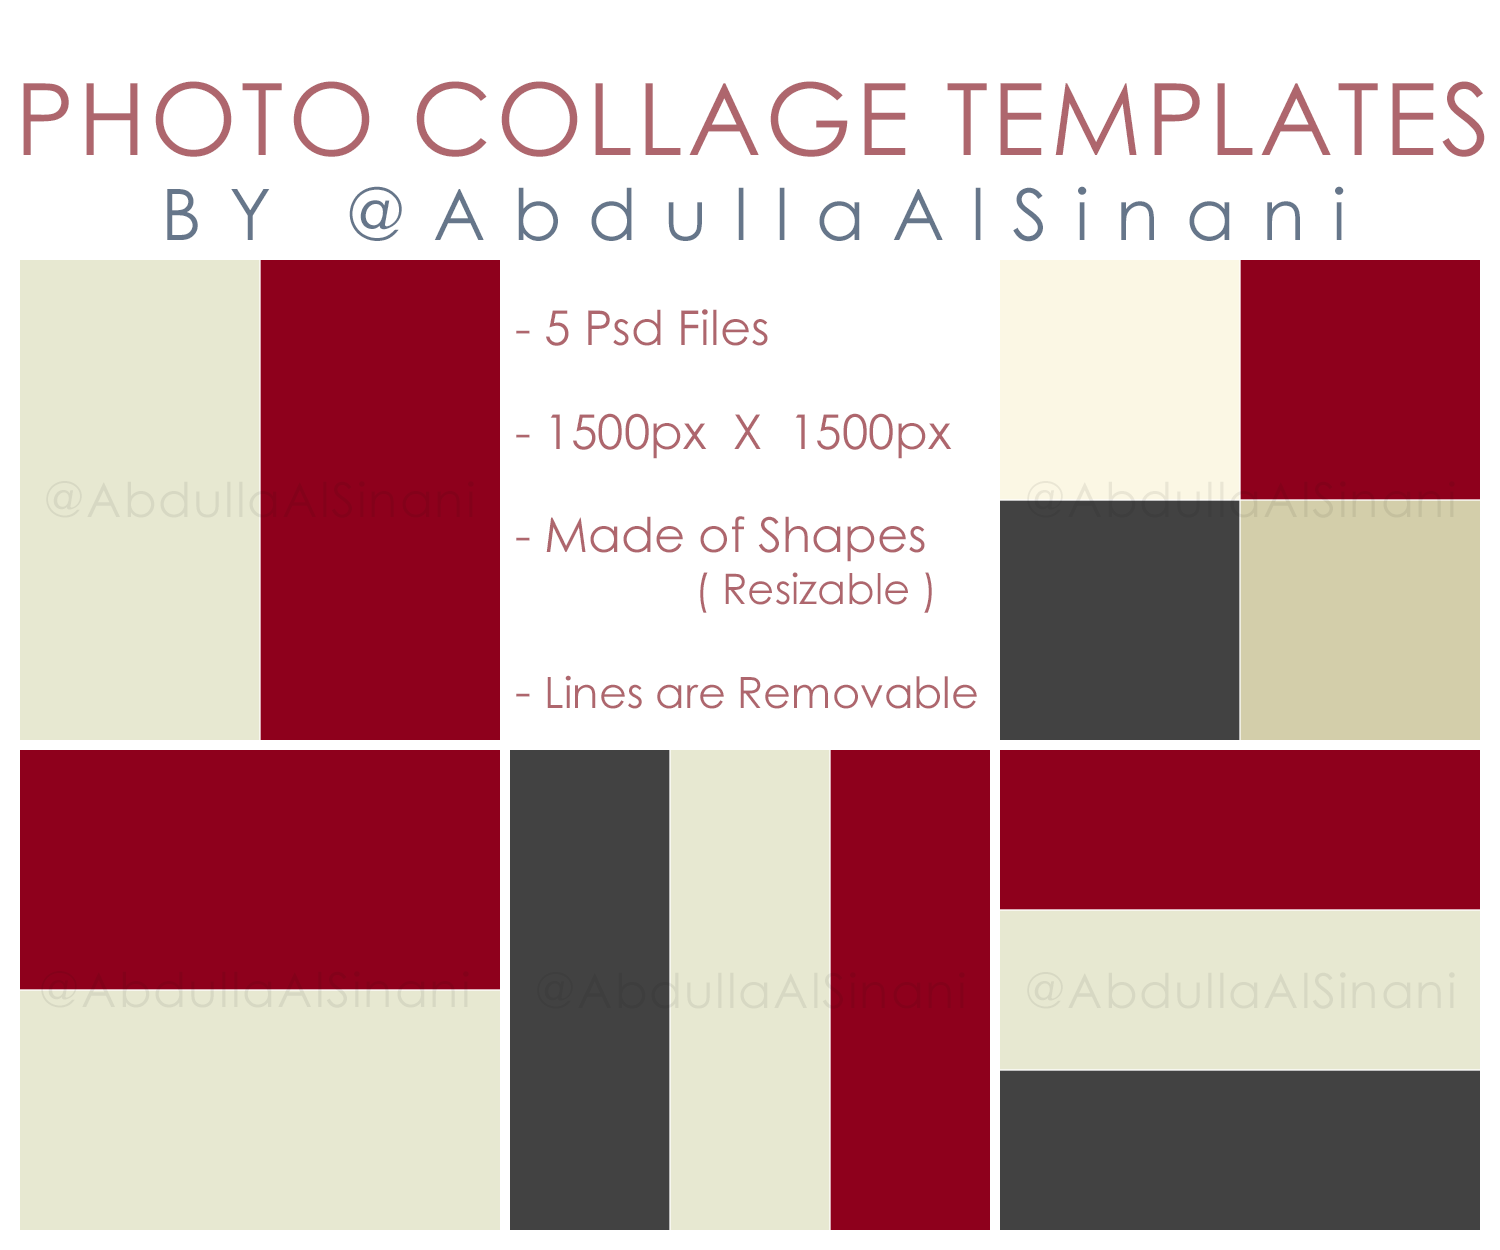 DeviantArt: More Like Photo Collage Templates - For web and ...